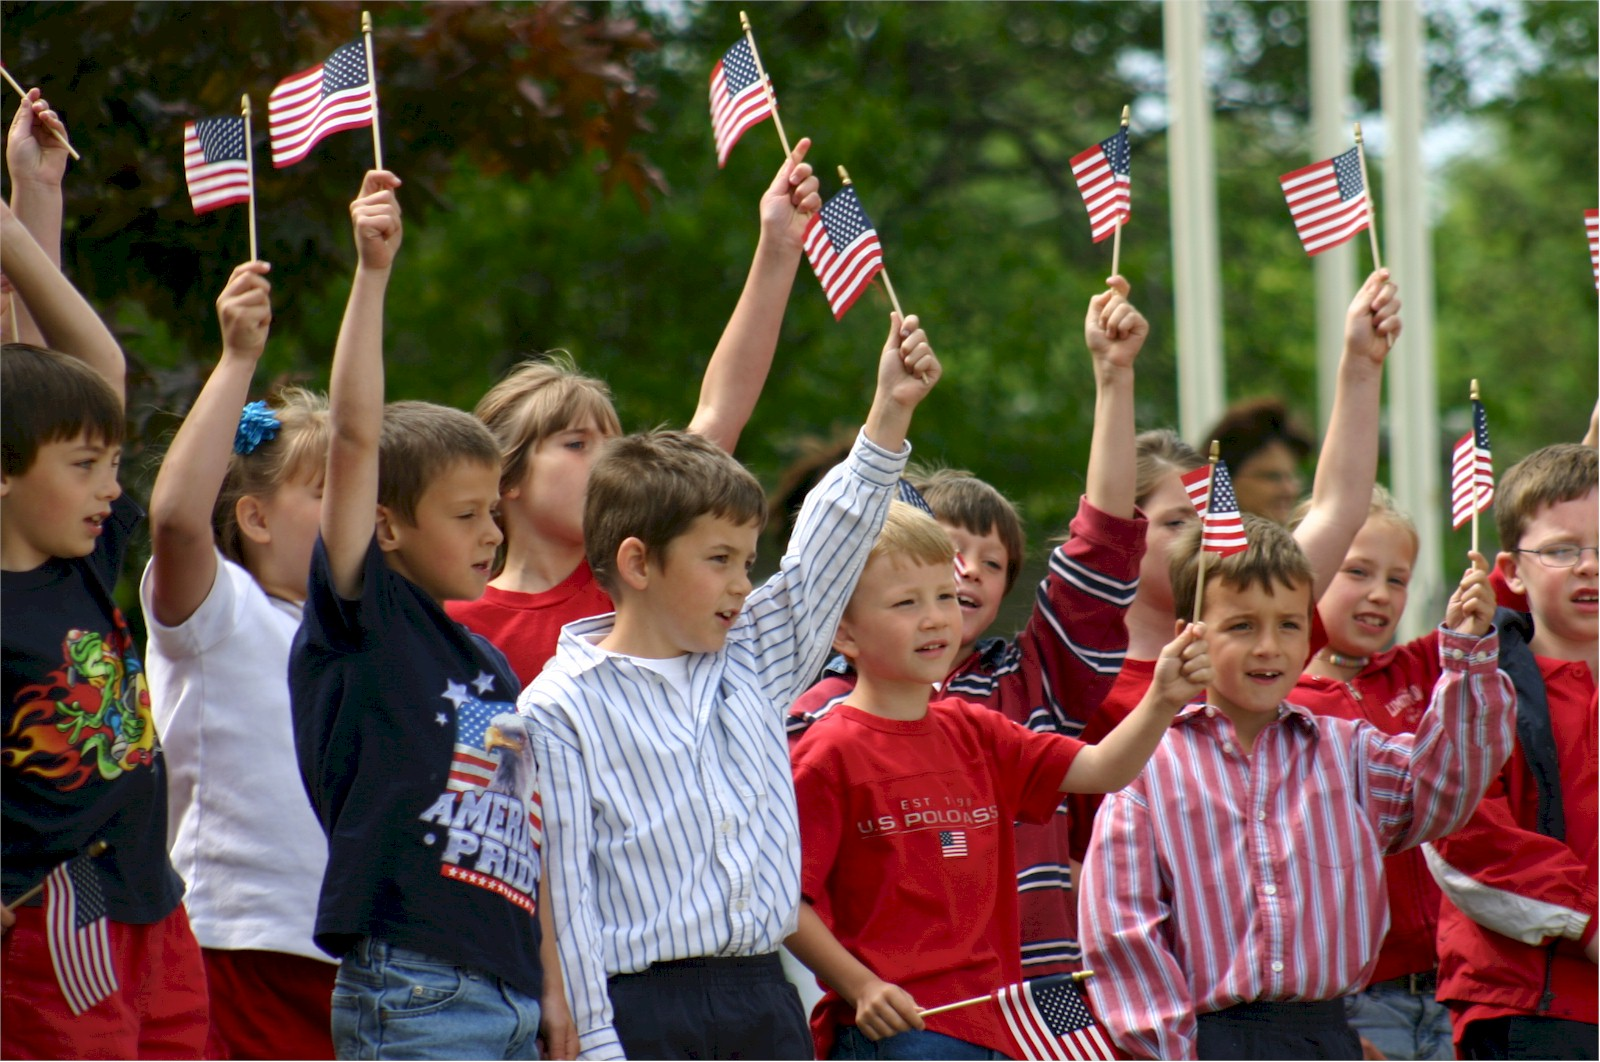 Children with American Flags